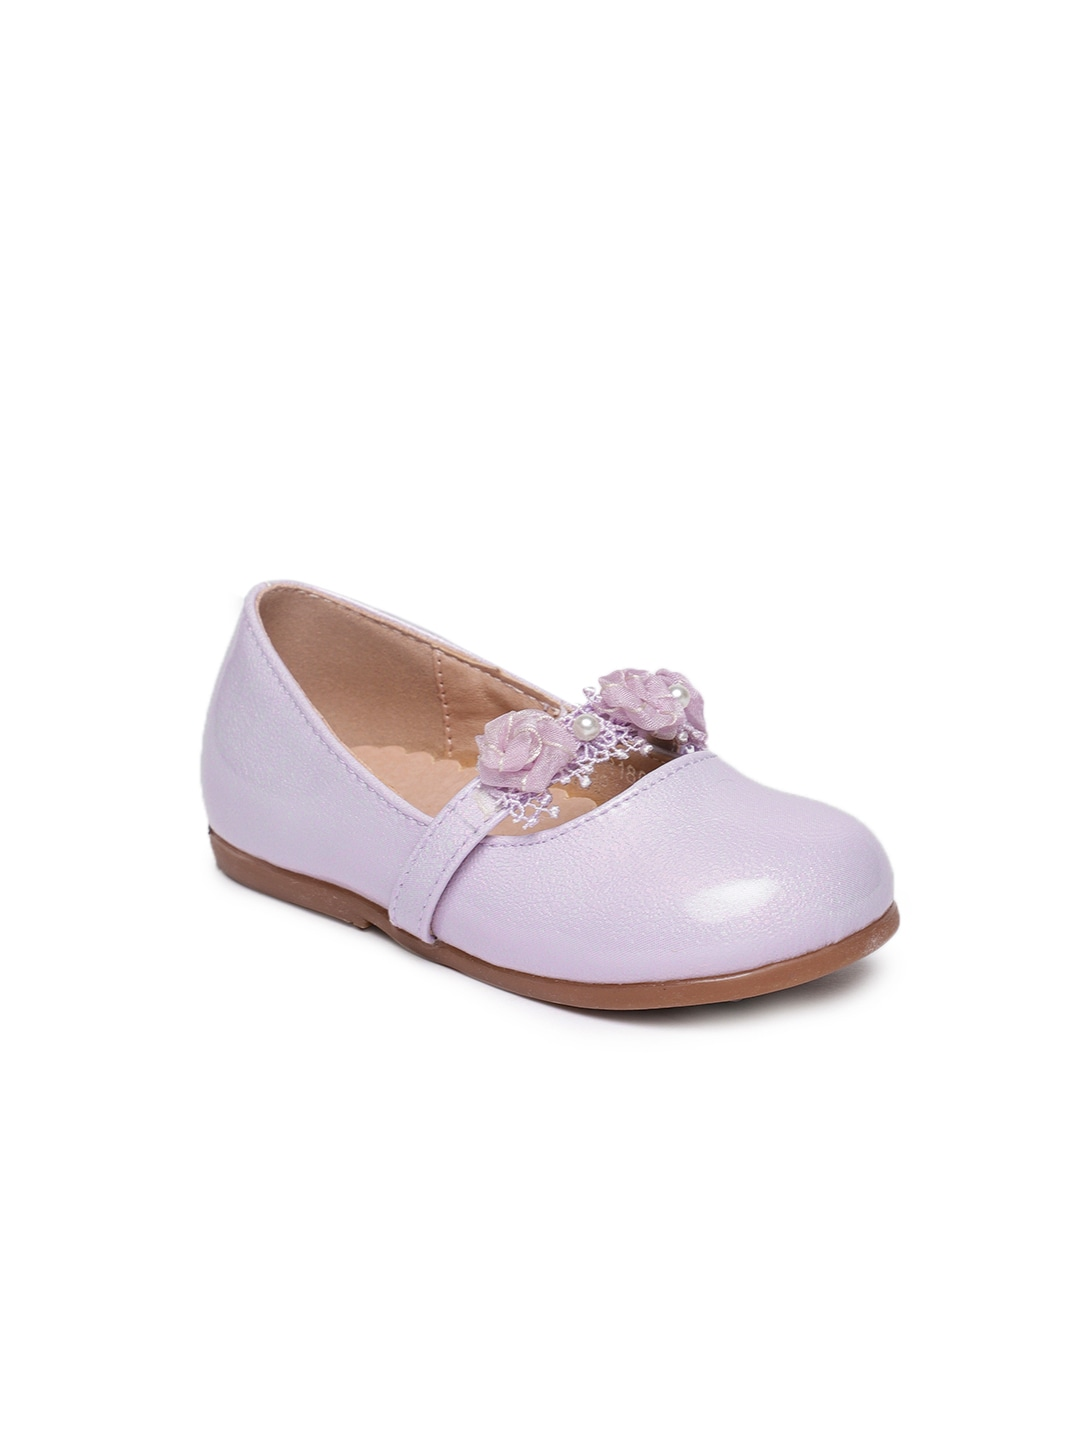 9fc78adafc Lavender Shoes - Buy Lavender Shoes online in India